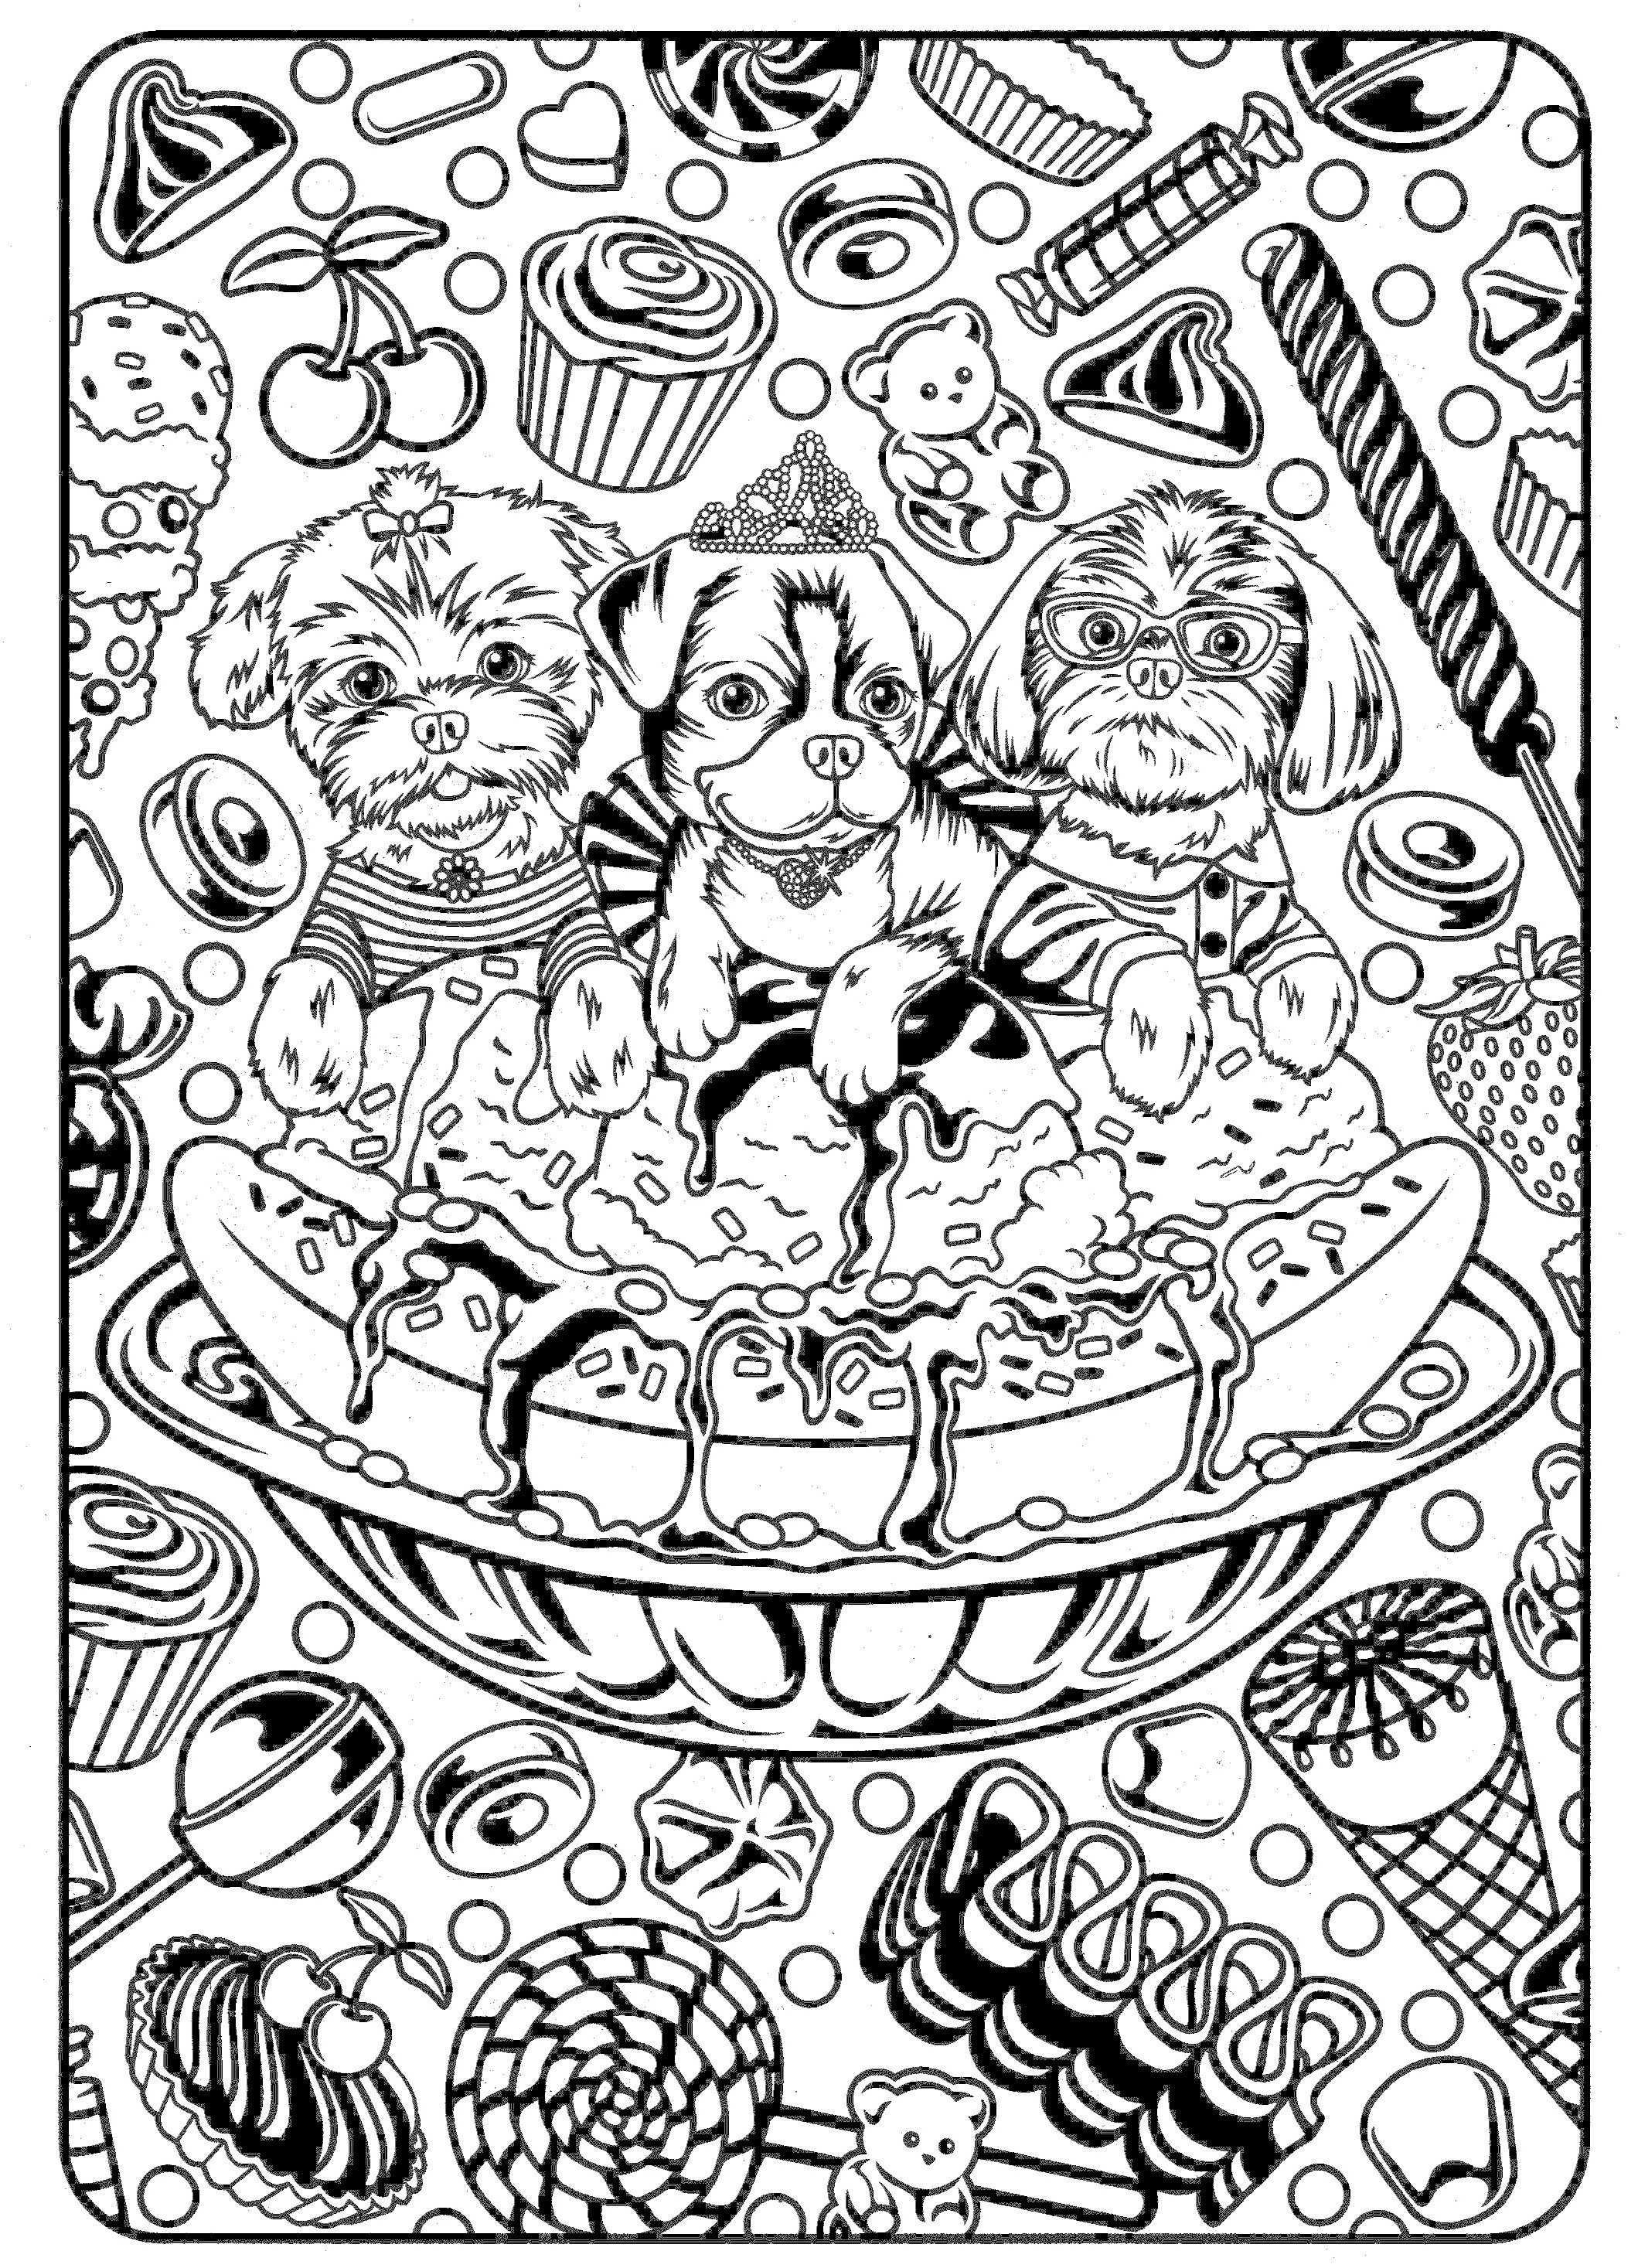 100 coloring pages Collection-Absorbing Food Coloring Pages As Though Funny Coloring Pages For Adults Fun Things To Color Unique Hair 1-l